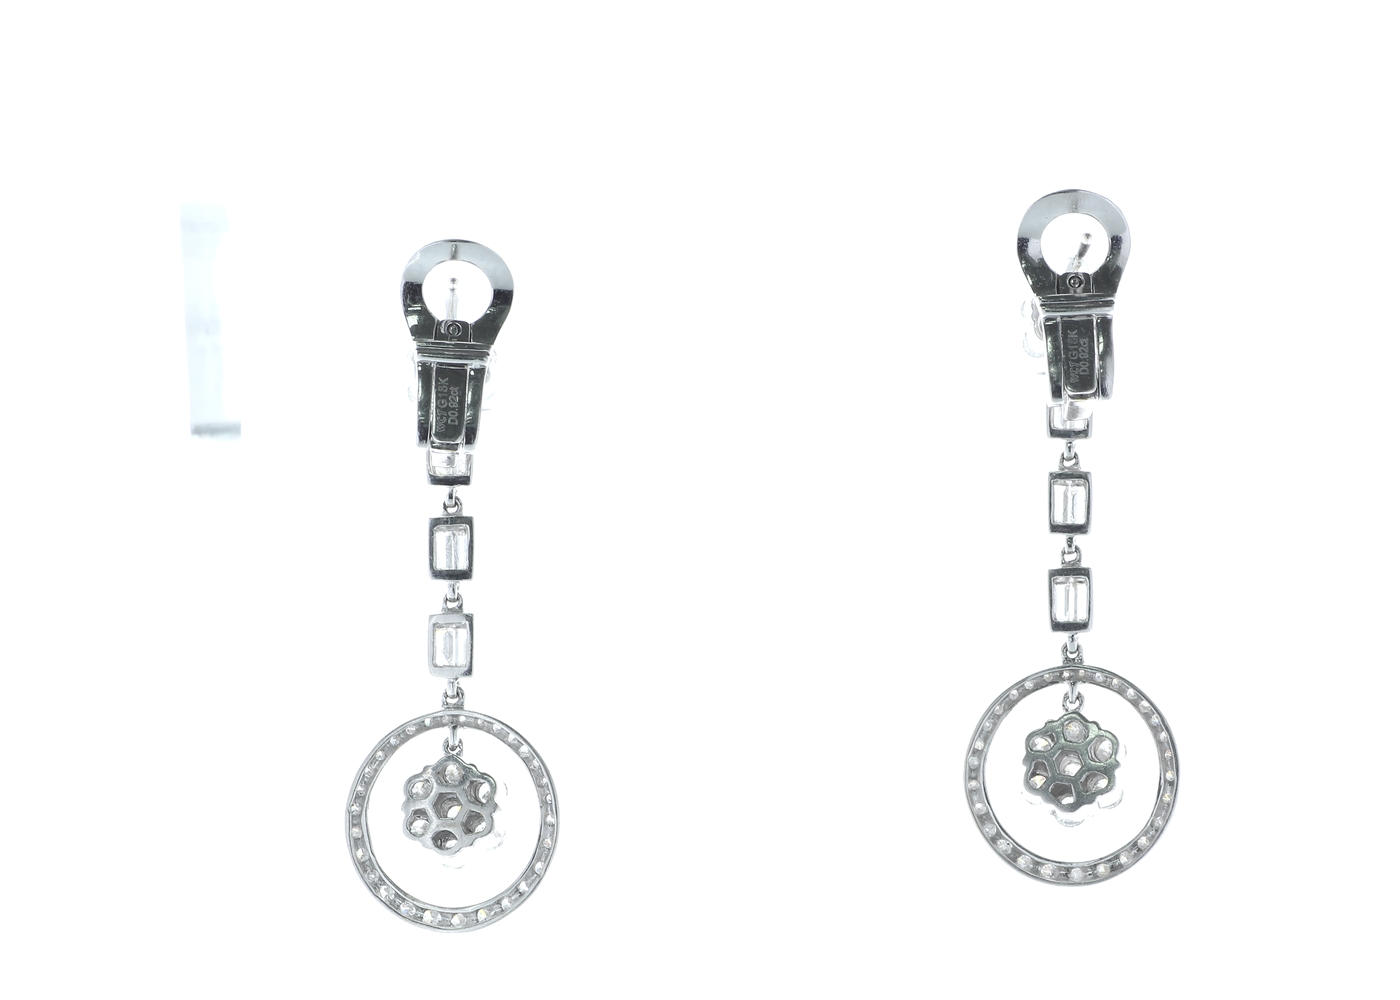 18ct White Gold Diamond Drop Cluster Earrings 1.84 Carats - Image 3 of 4